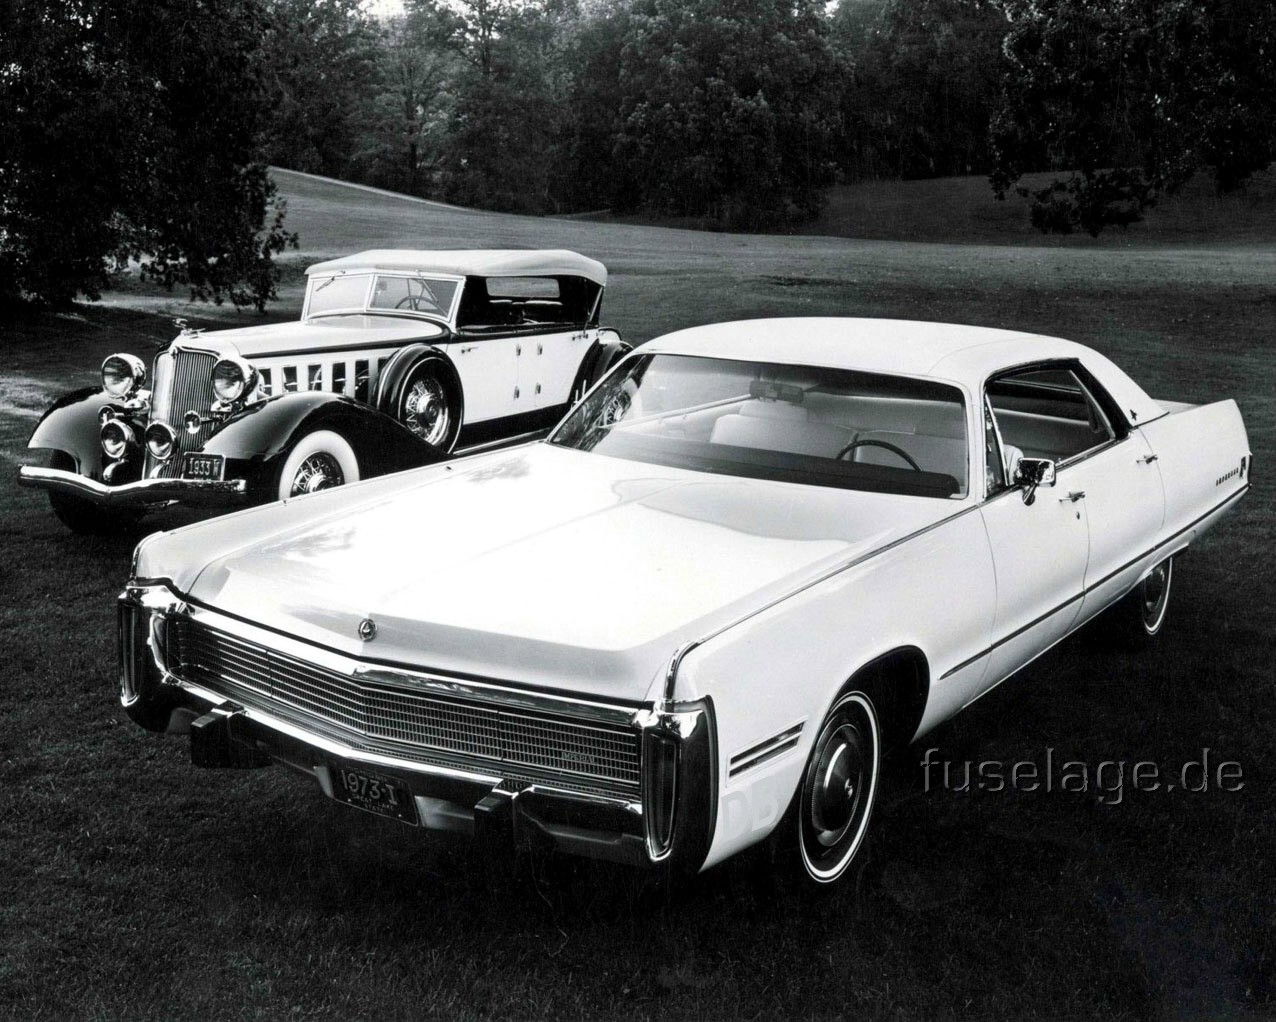 1973 Chrysler Imperial Lebaron Information And Photos